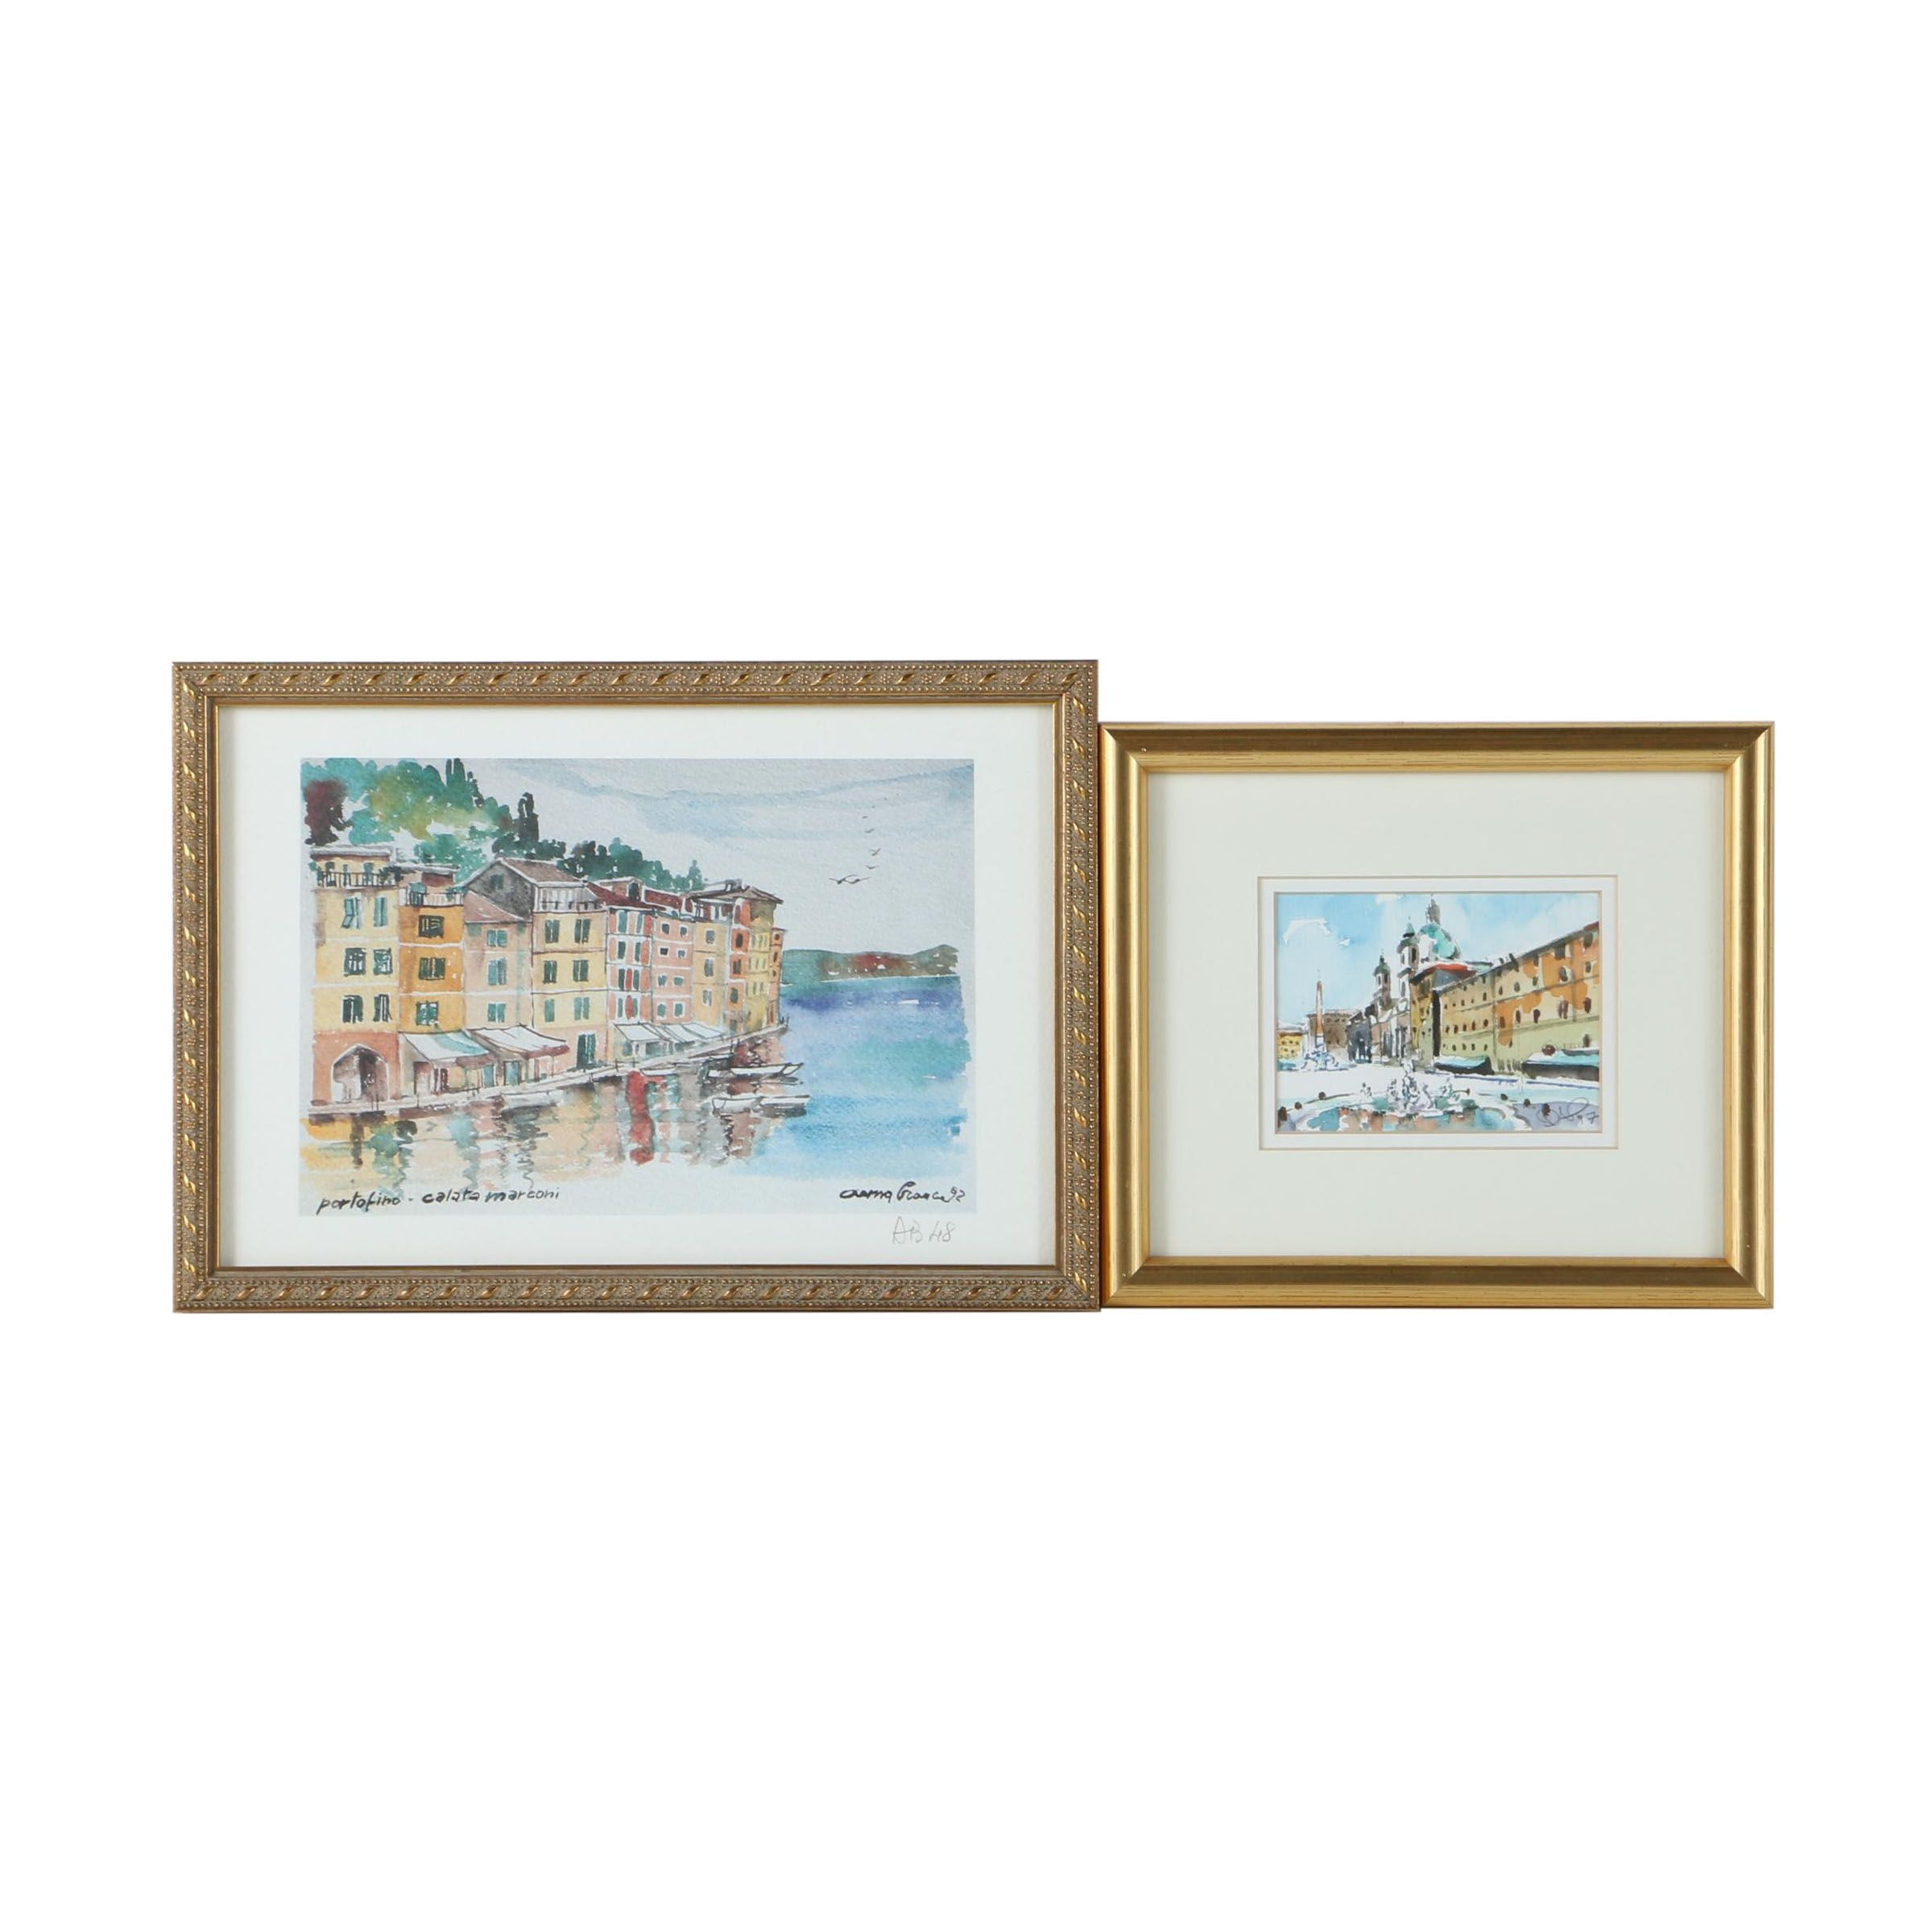 McDermott Watercolor Painting on Paper and Offset Lithograph on Paper